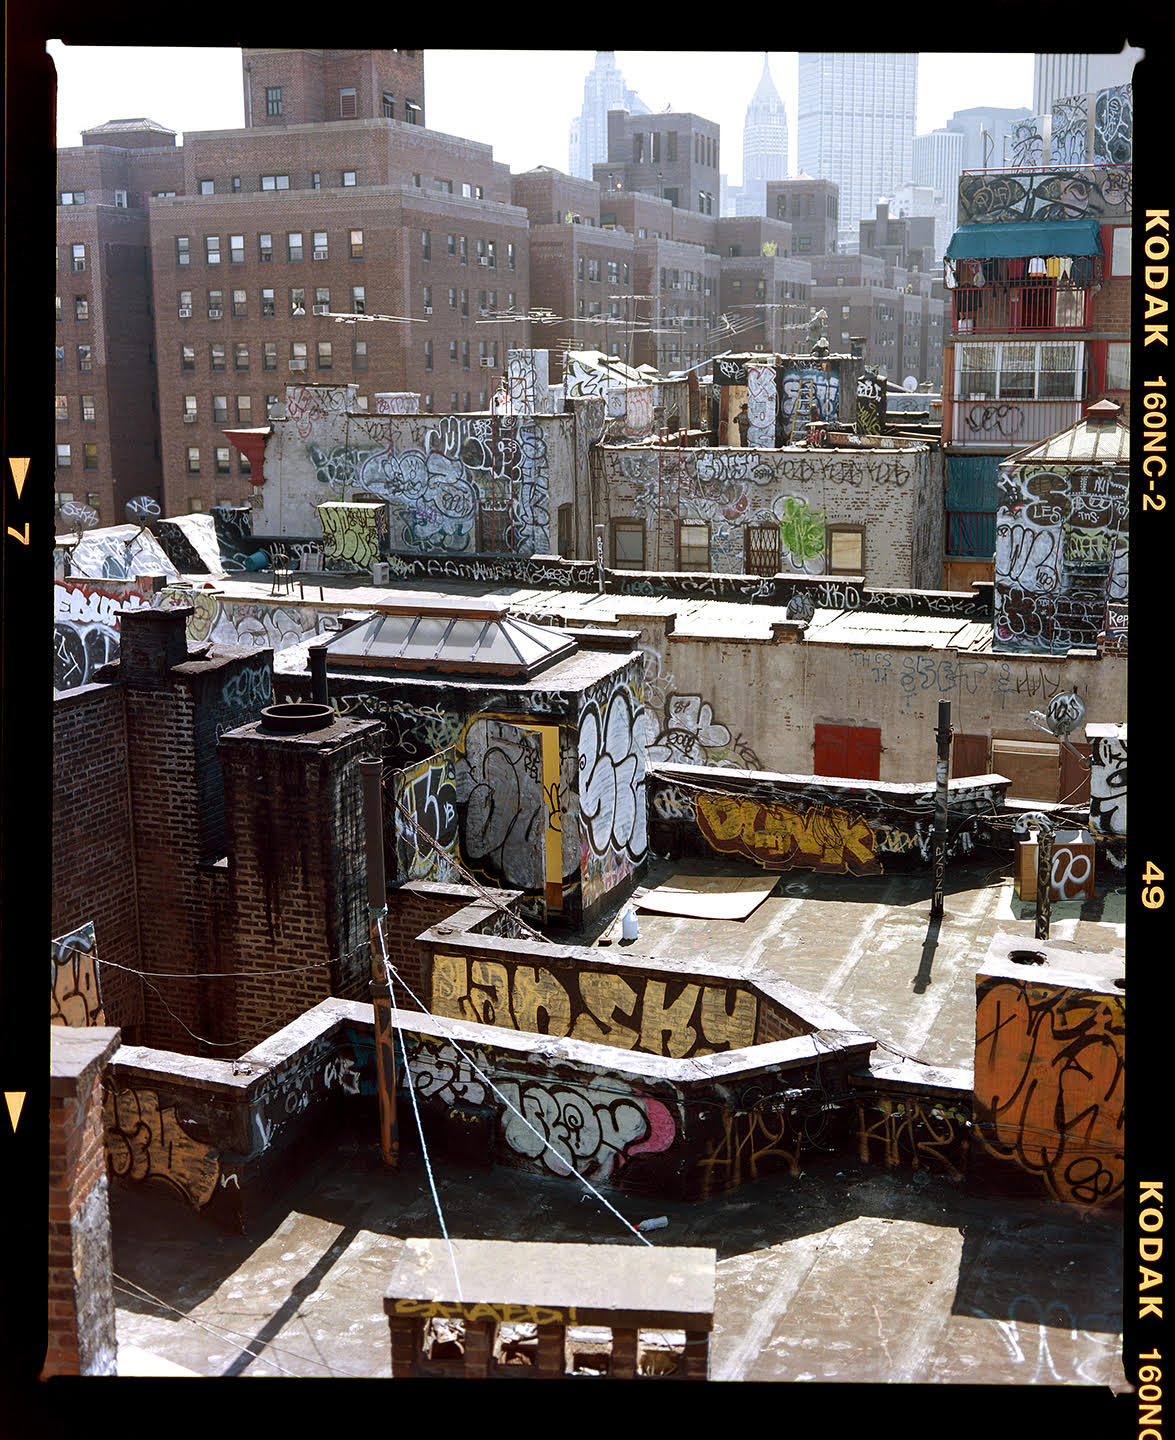 """""""This is my favourite of my shots from New York. Taken from the Manhattan Bridge I love all the layers in this shot. From the graffiti in the foreground, to the men working on the rooftops, to the Empire State Building in the background. I never get tired of this shot"""""""